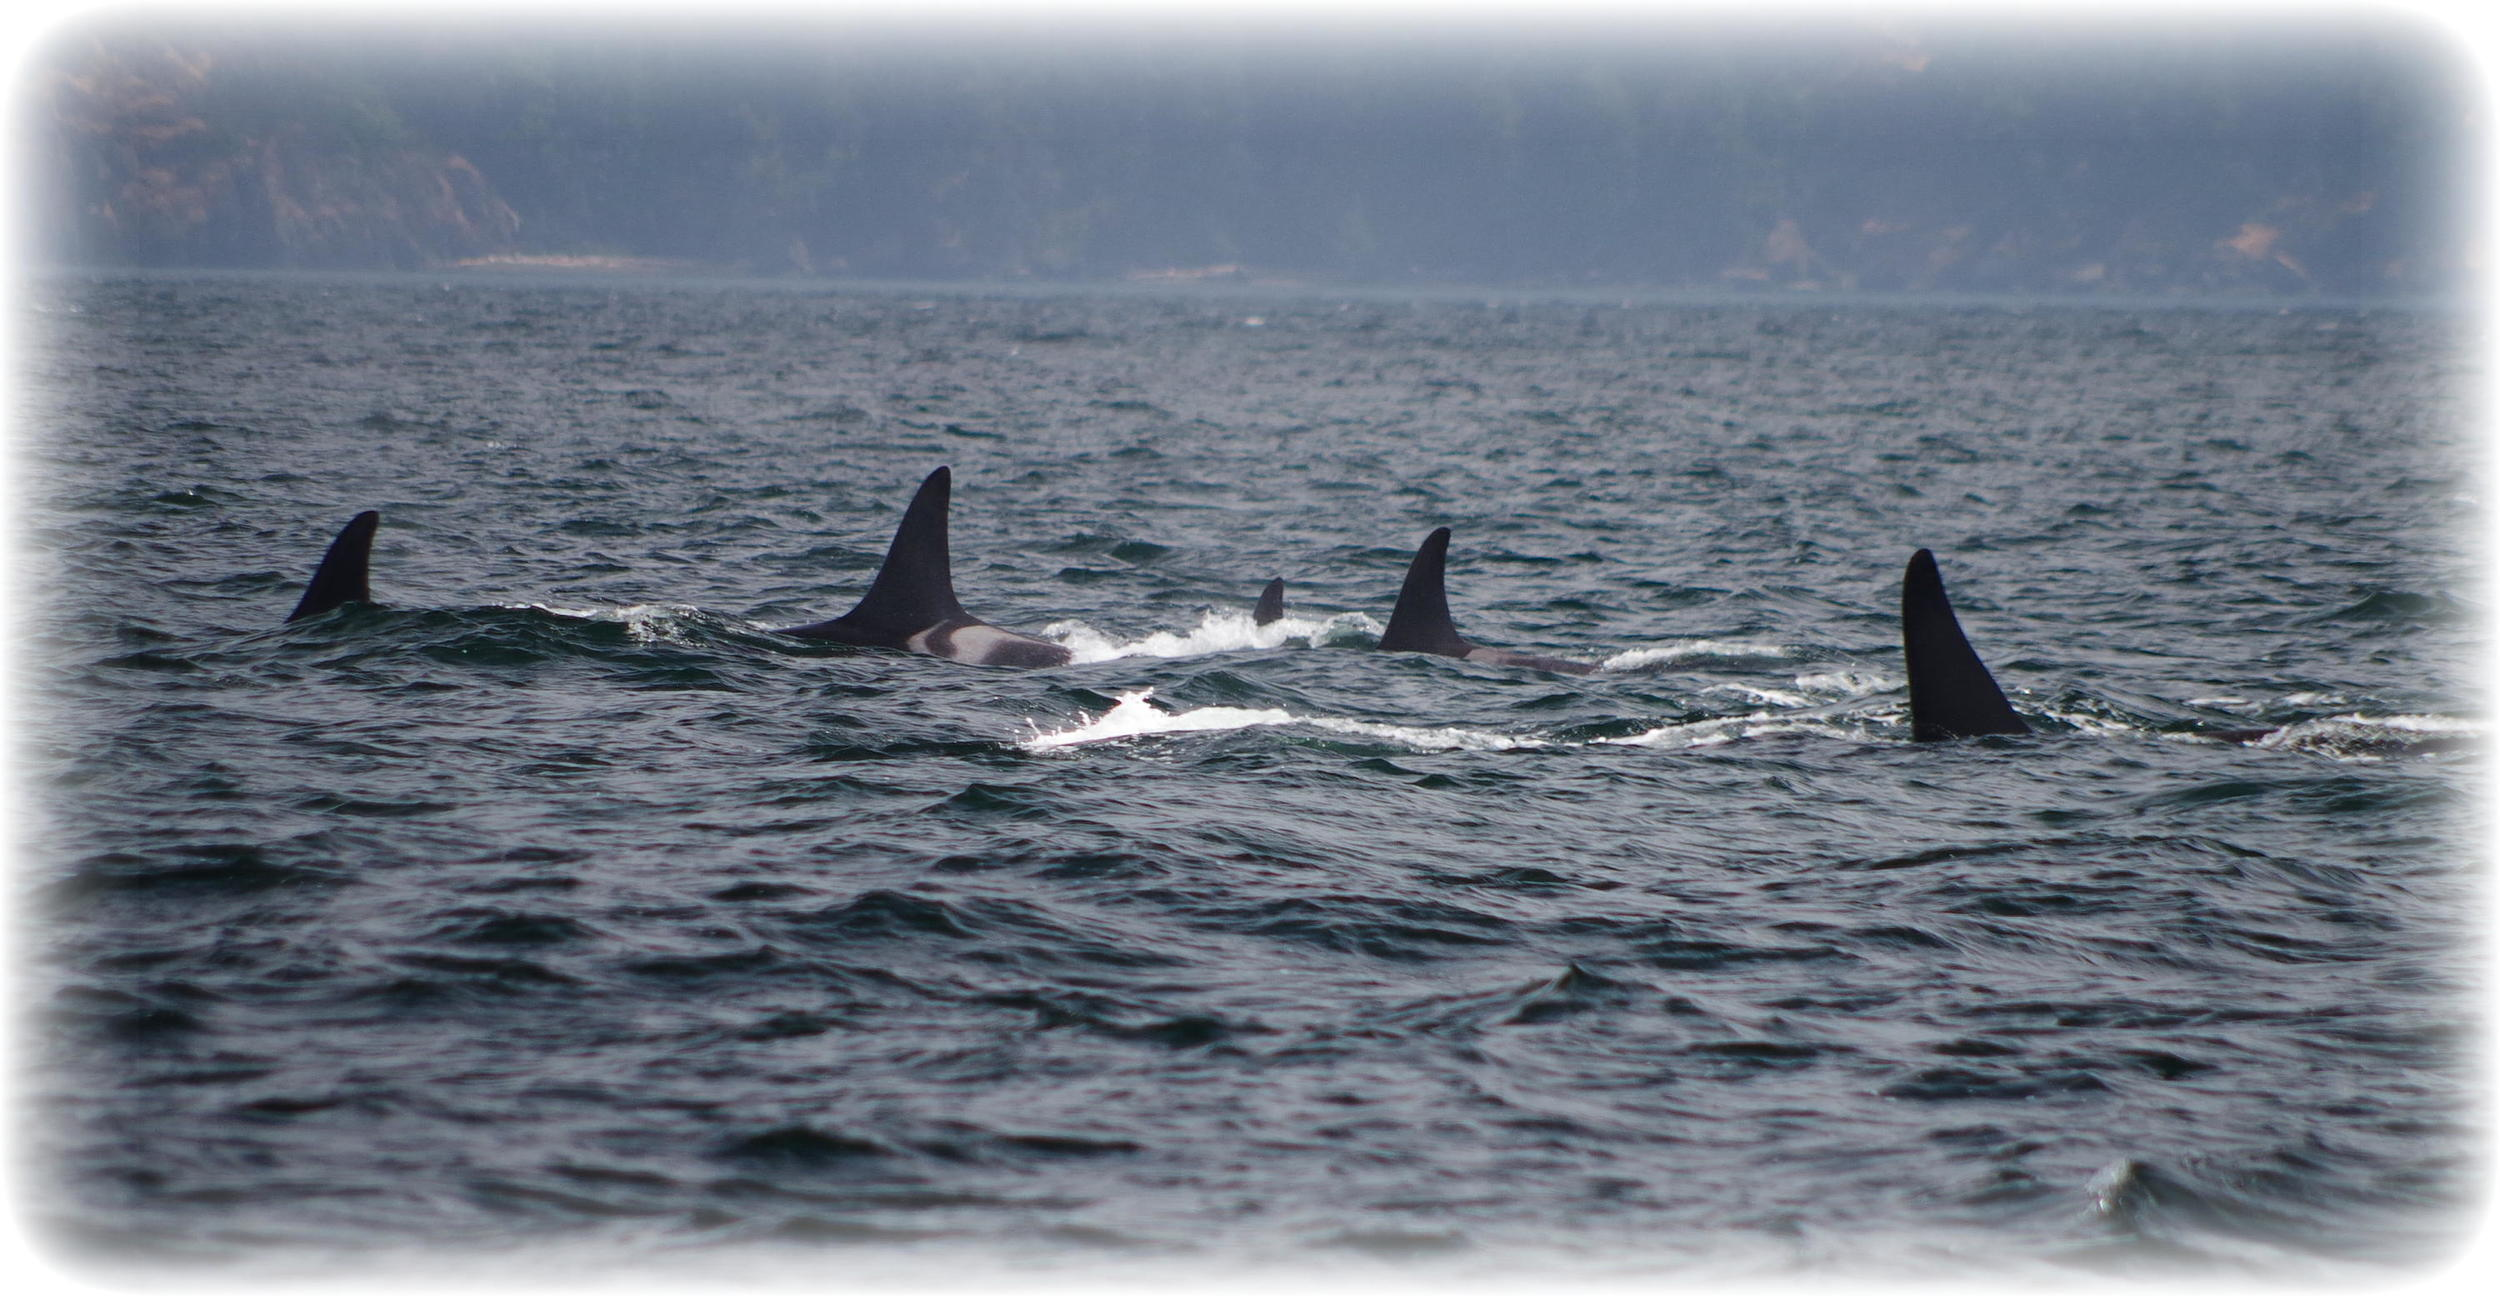 Southern Resident Killer Whales. Photo: Elizabeth Batt/All Rights Reserved